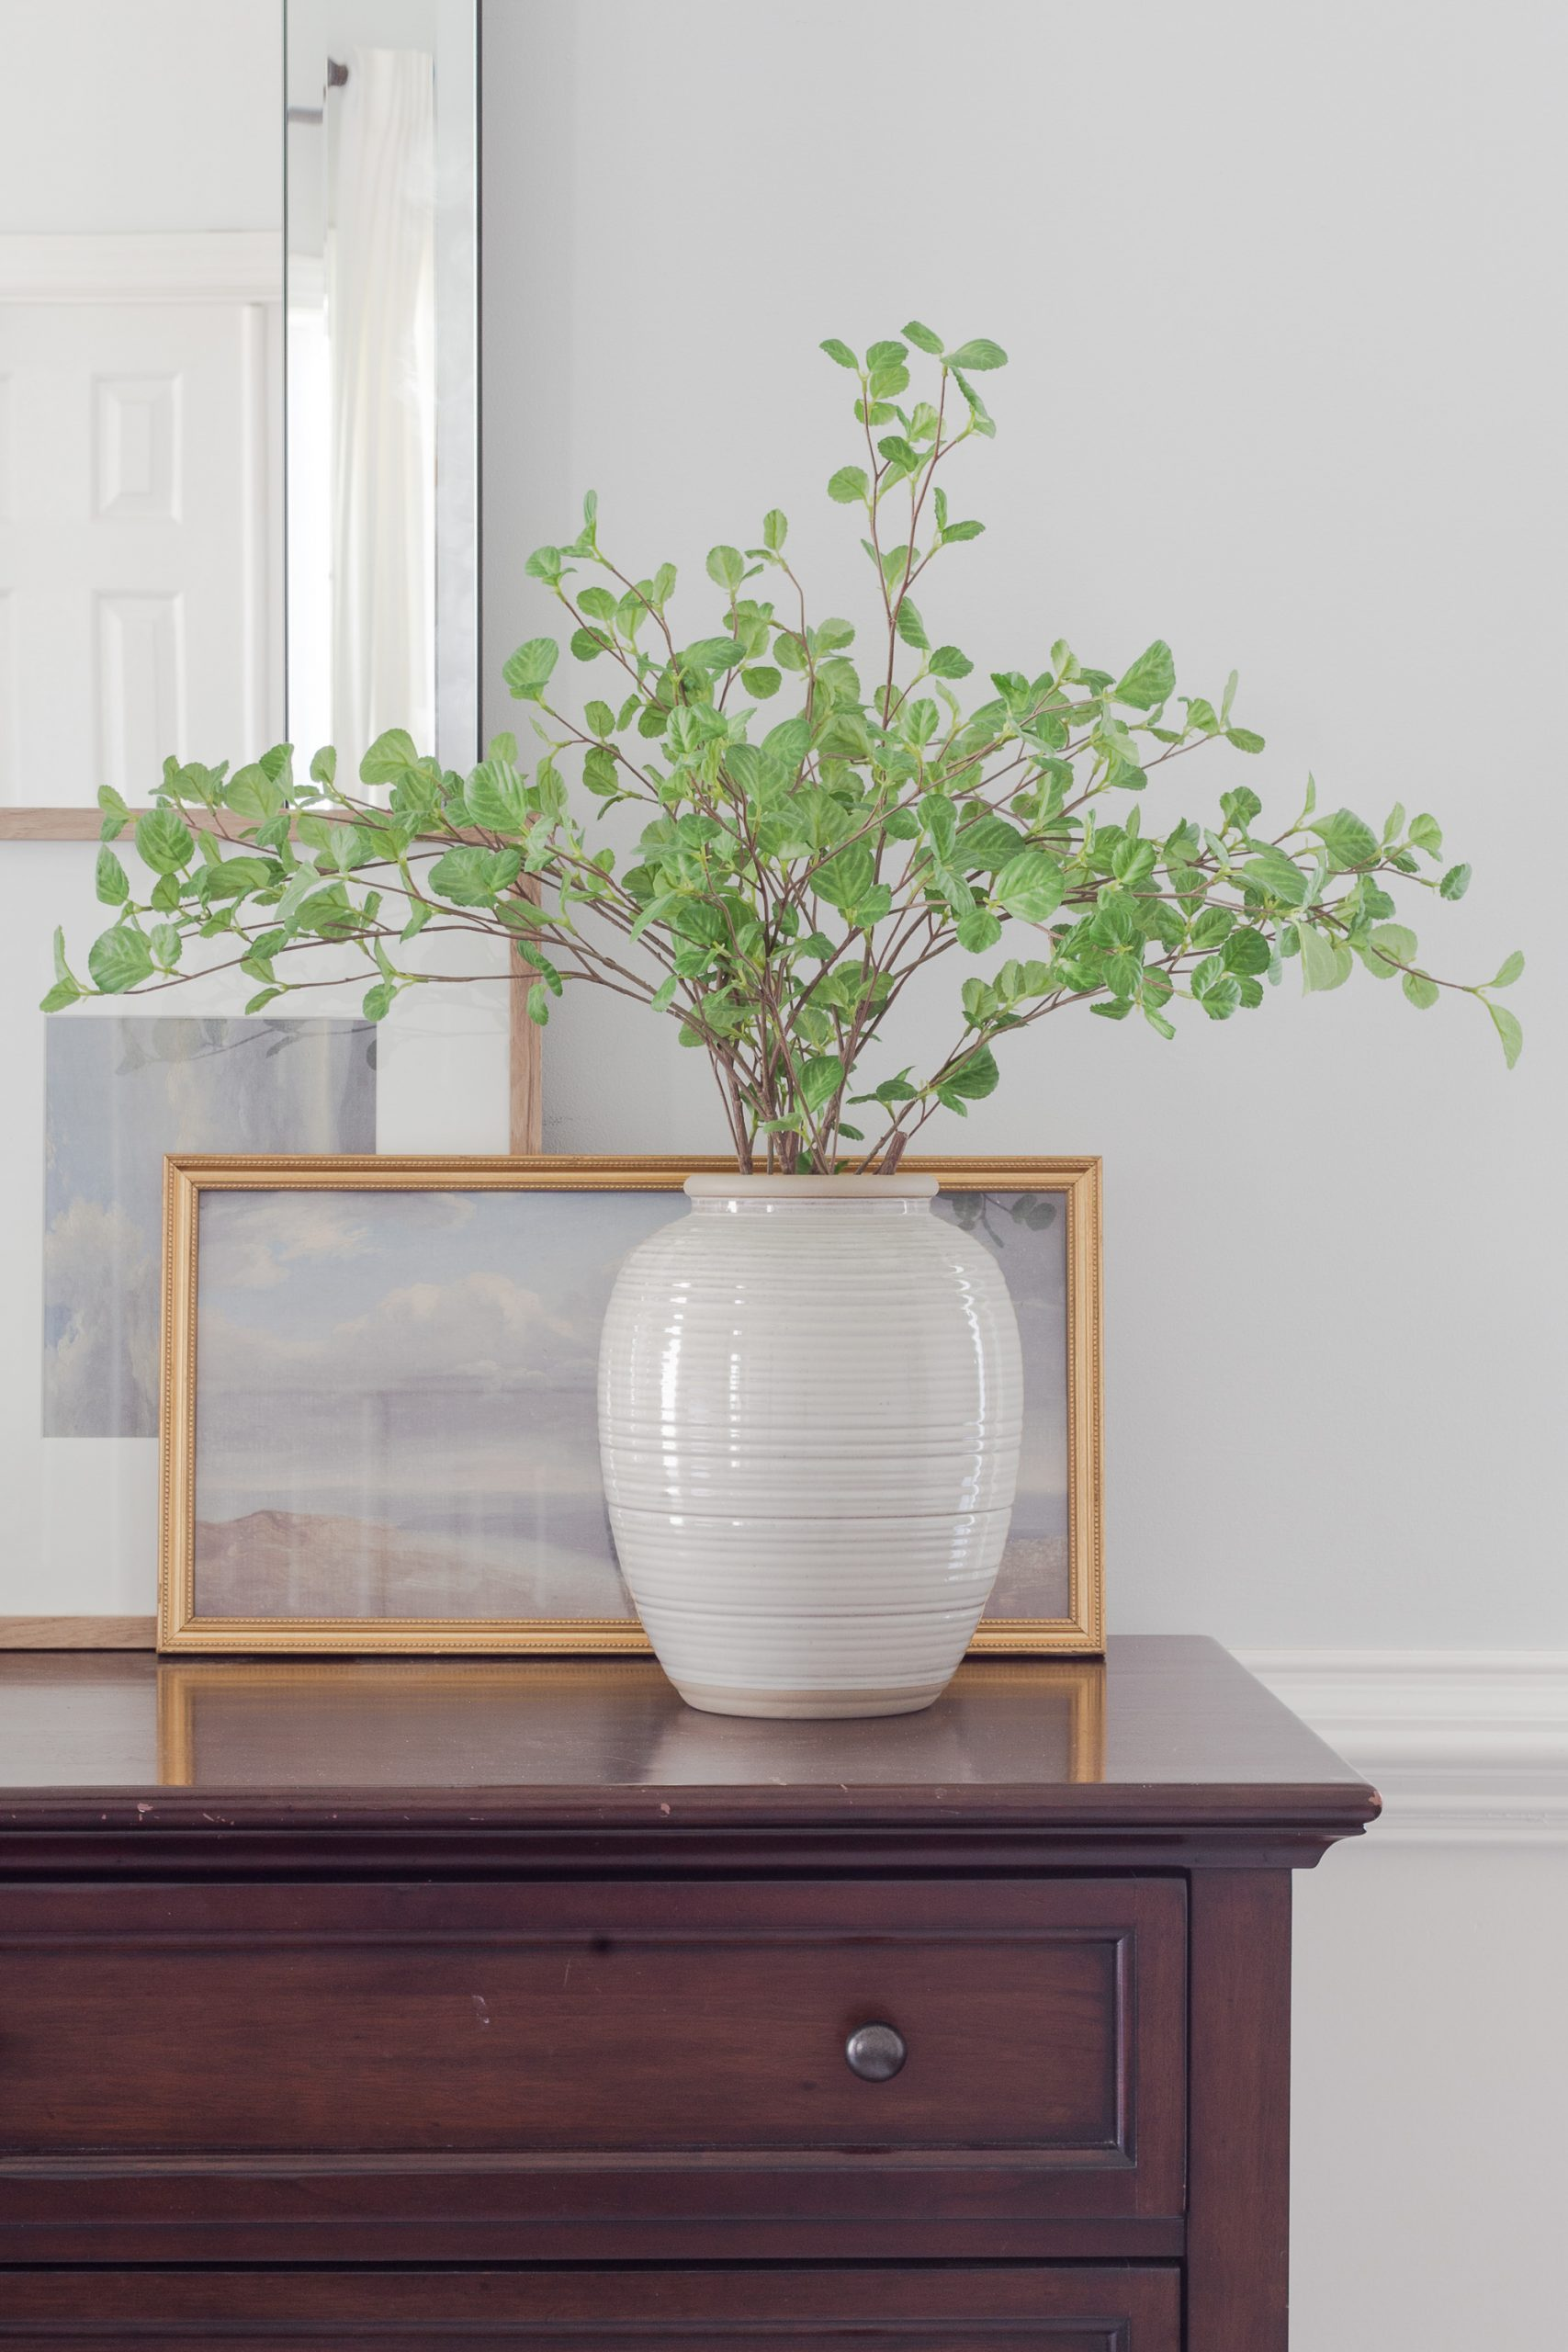 vase with greenery on a wooden dresser with mirror